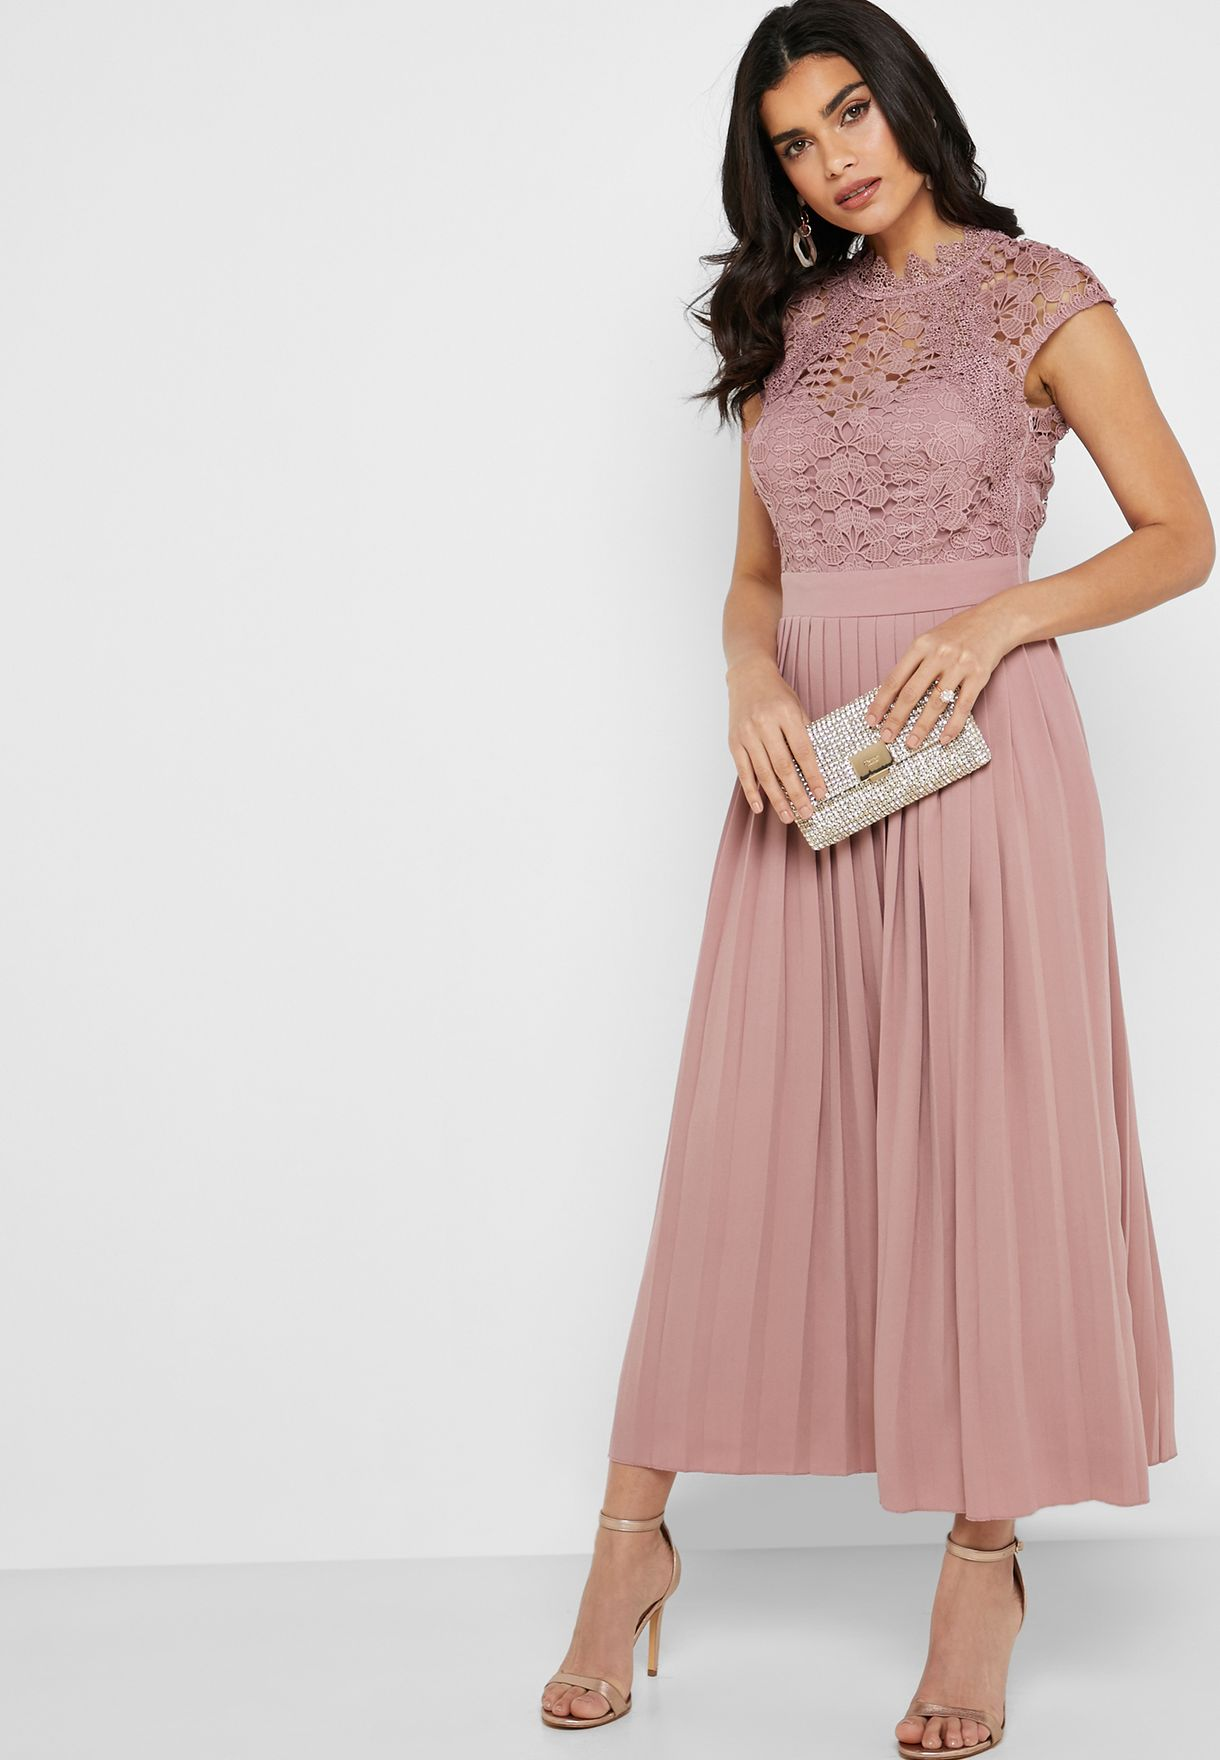 Crochet Top Pleated Skirt Dress